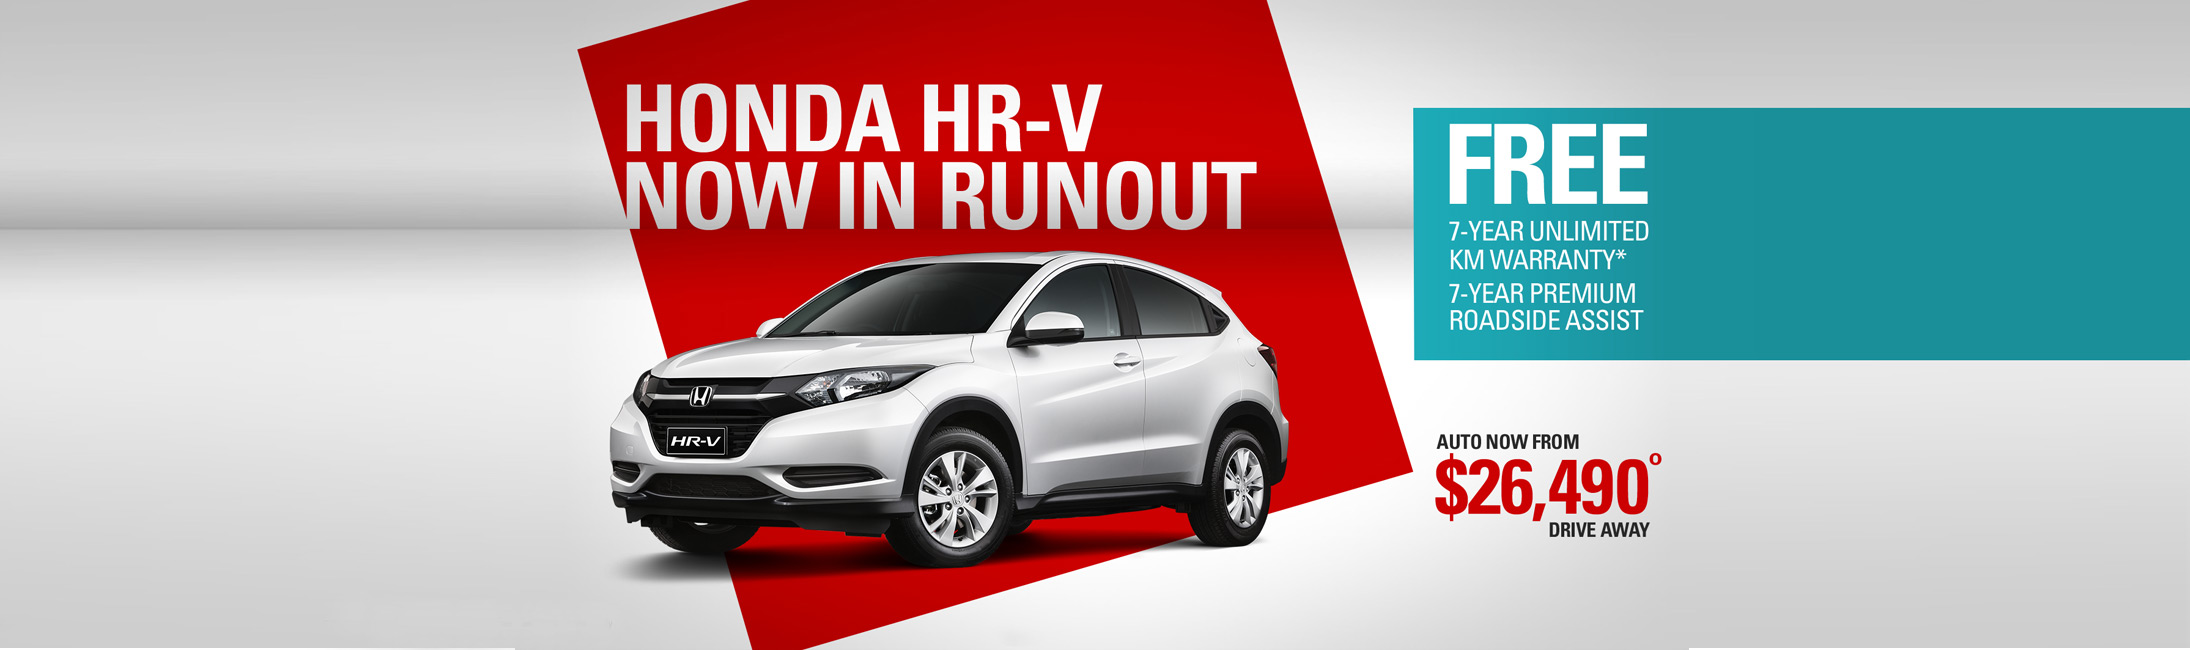 Honda HRV Run Out